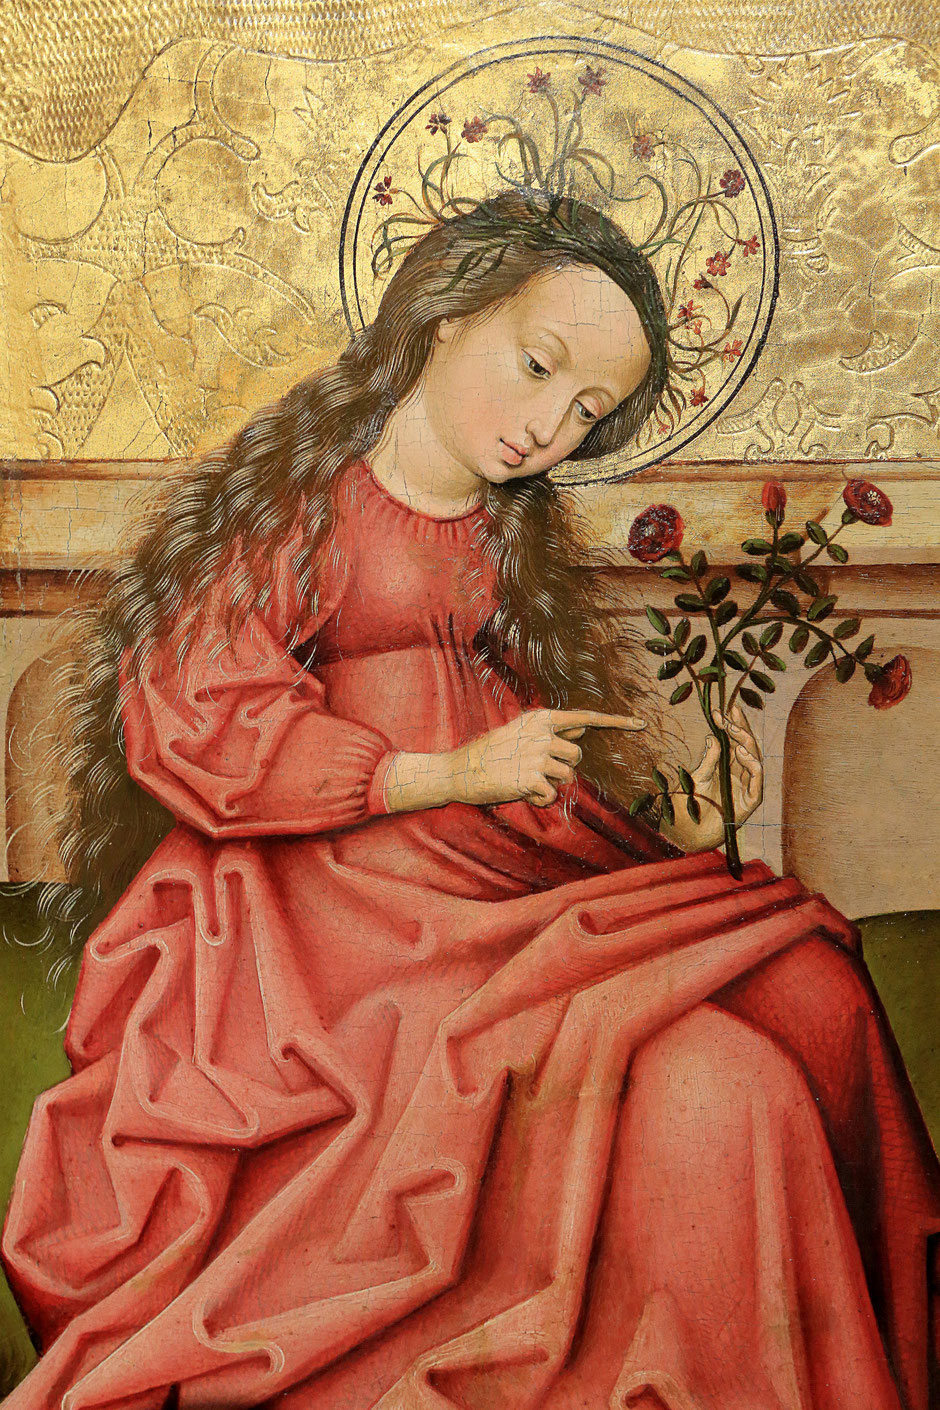 Madonna of the garden or Sainte-Dorothée. Anonymous Rhenish Master, sixteenth century. Around 1460-1470. Oil on panel tree. Oeuvre Notre Dame Museum in Strasbourg.